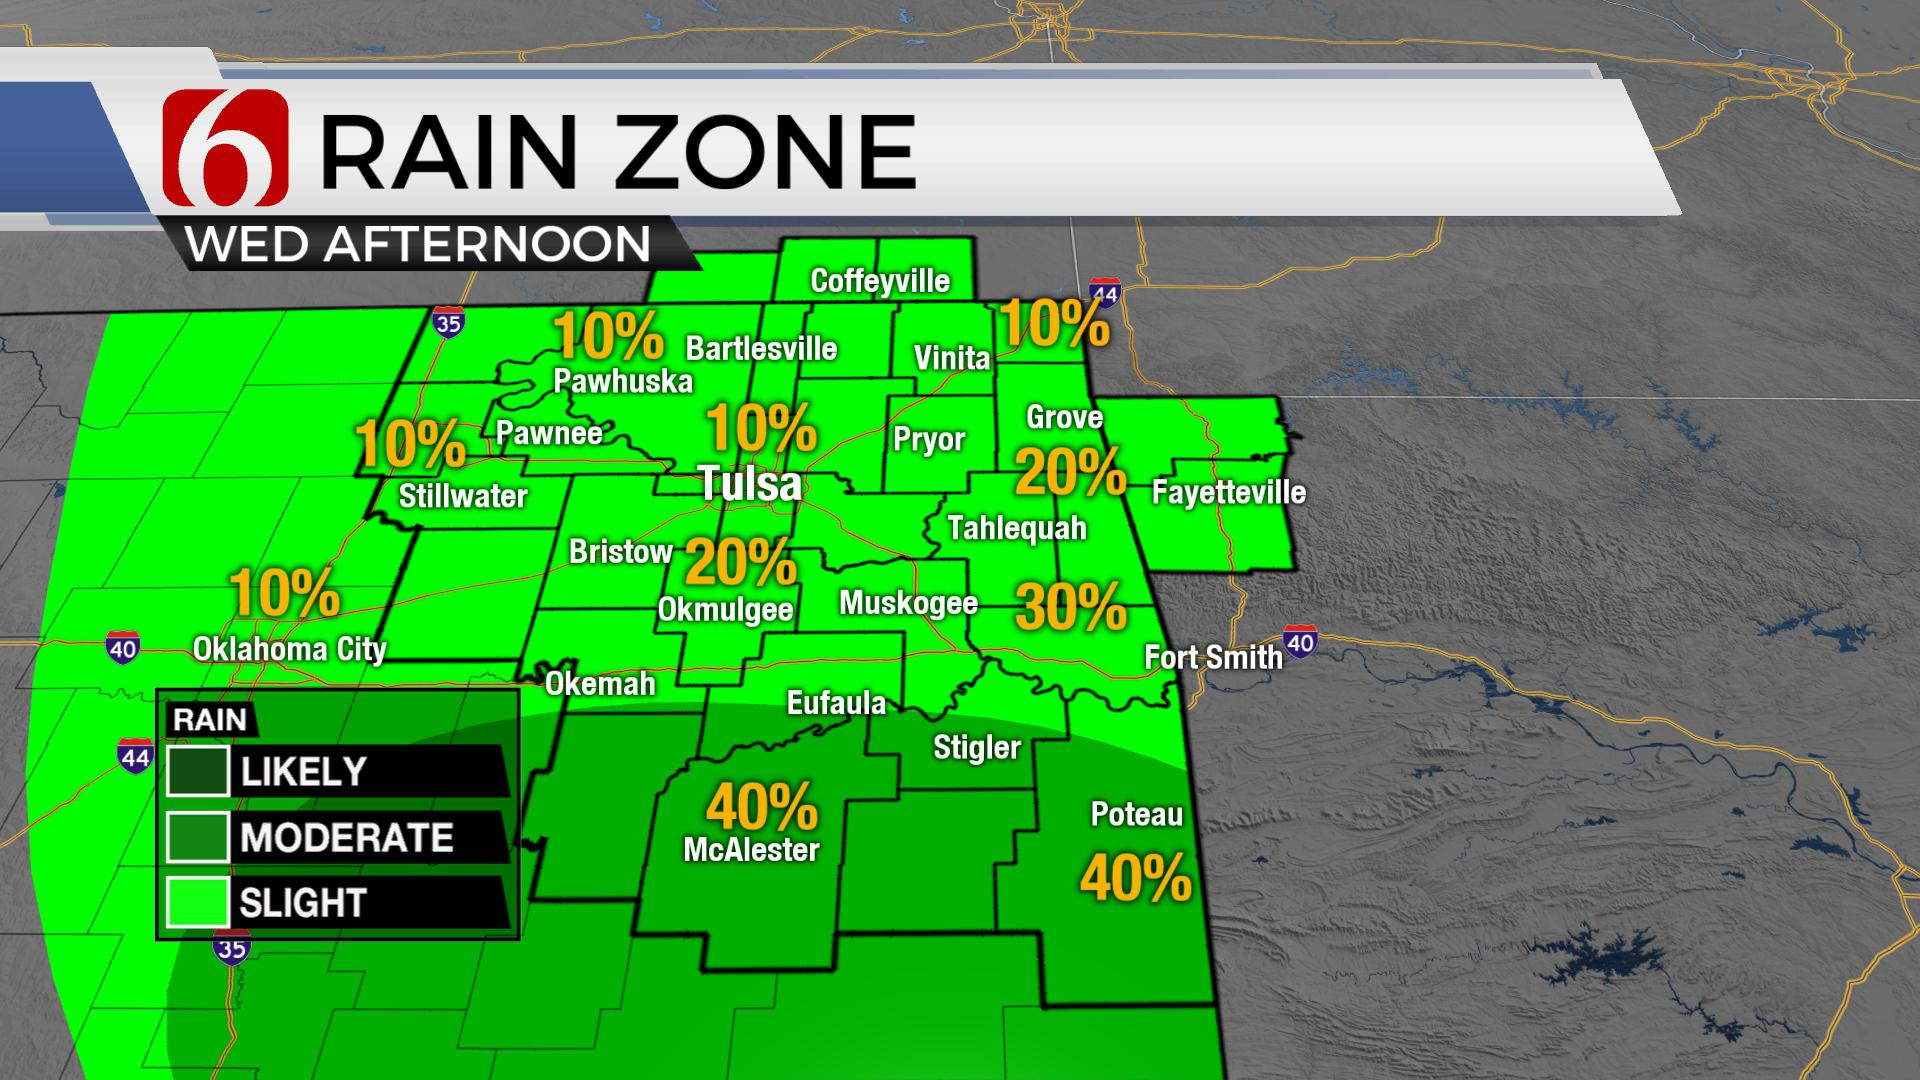 Lower Heat Continues With Few Showers For Wednesday